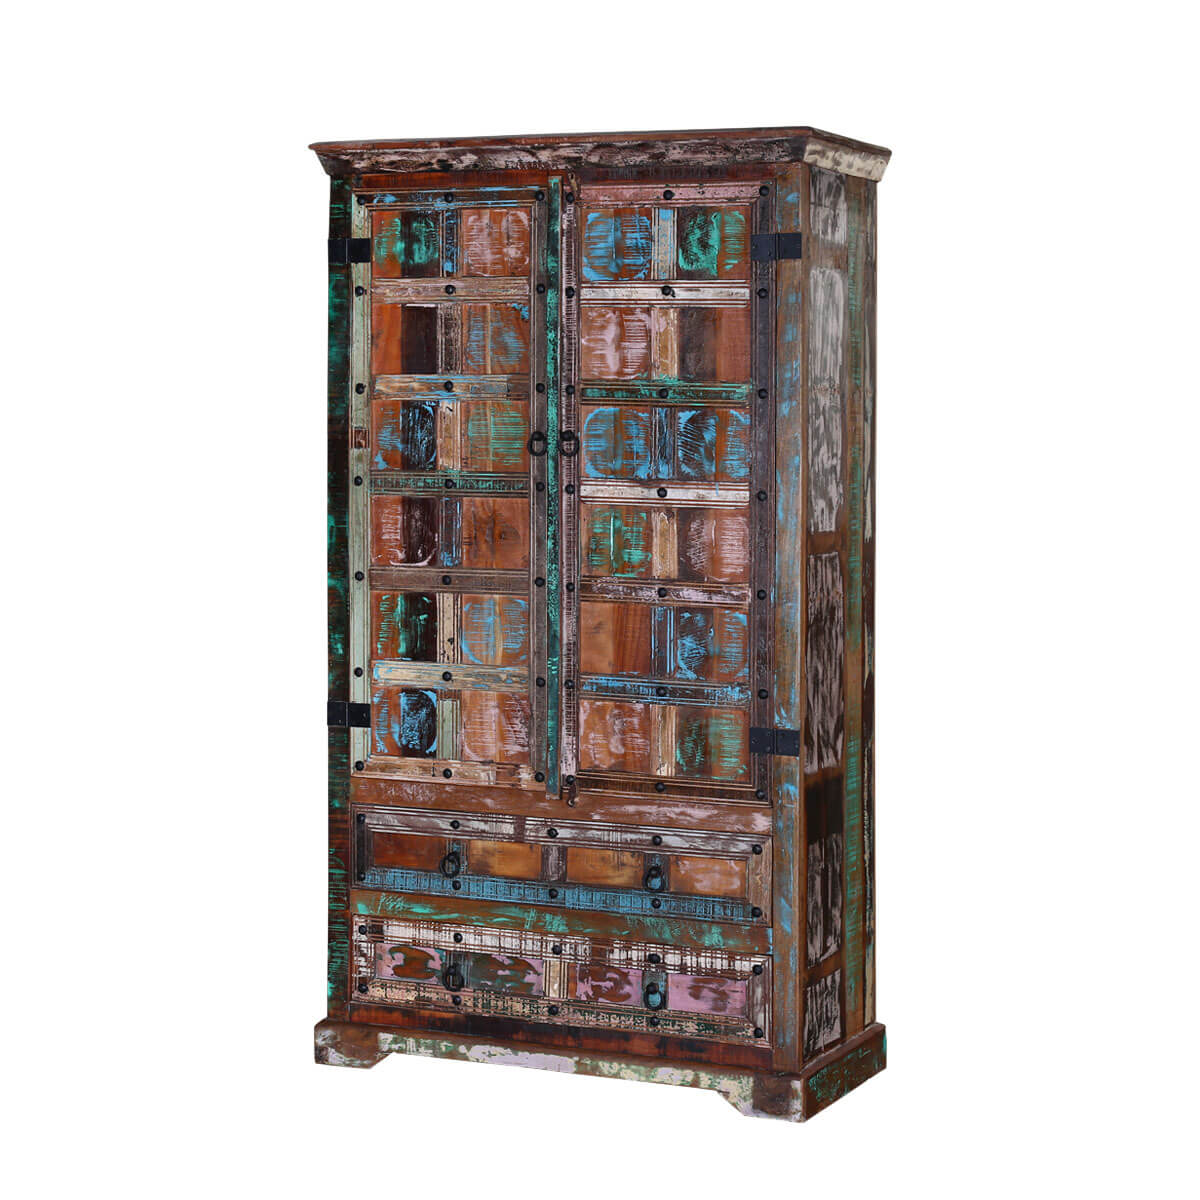 color patches reclaimed wood armoire storage cabinet - rustic color patches reclaimed wood armoire storage cabinet